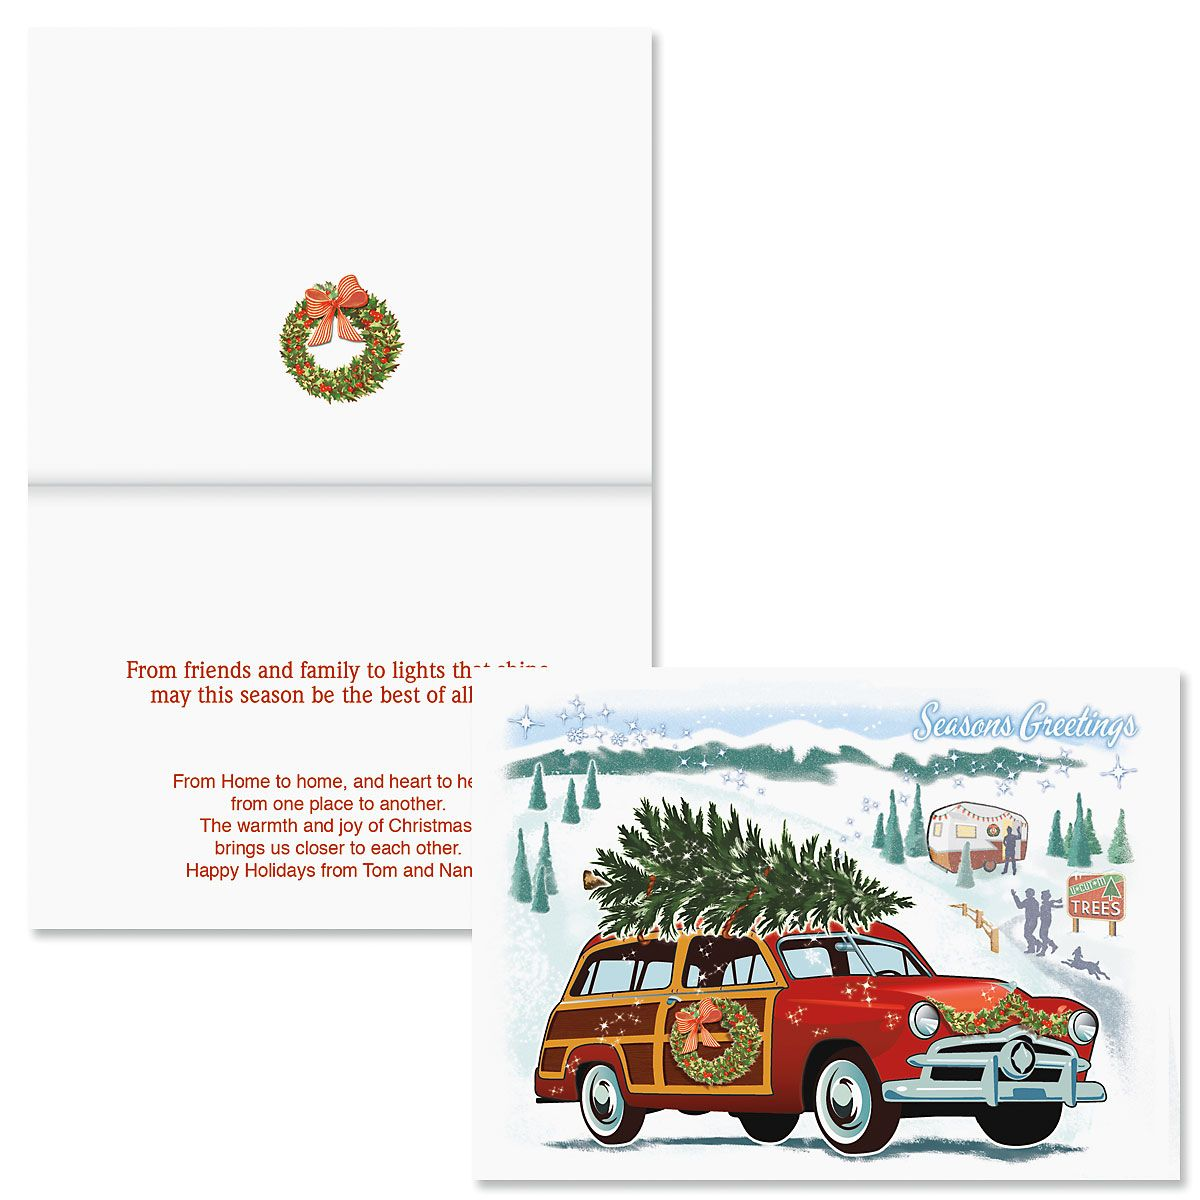 Nostalgic Greeting Christmas Cards